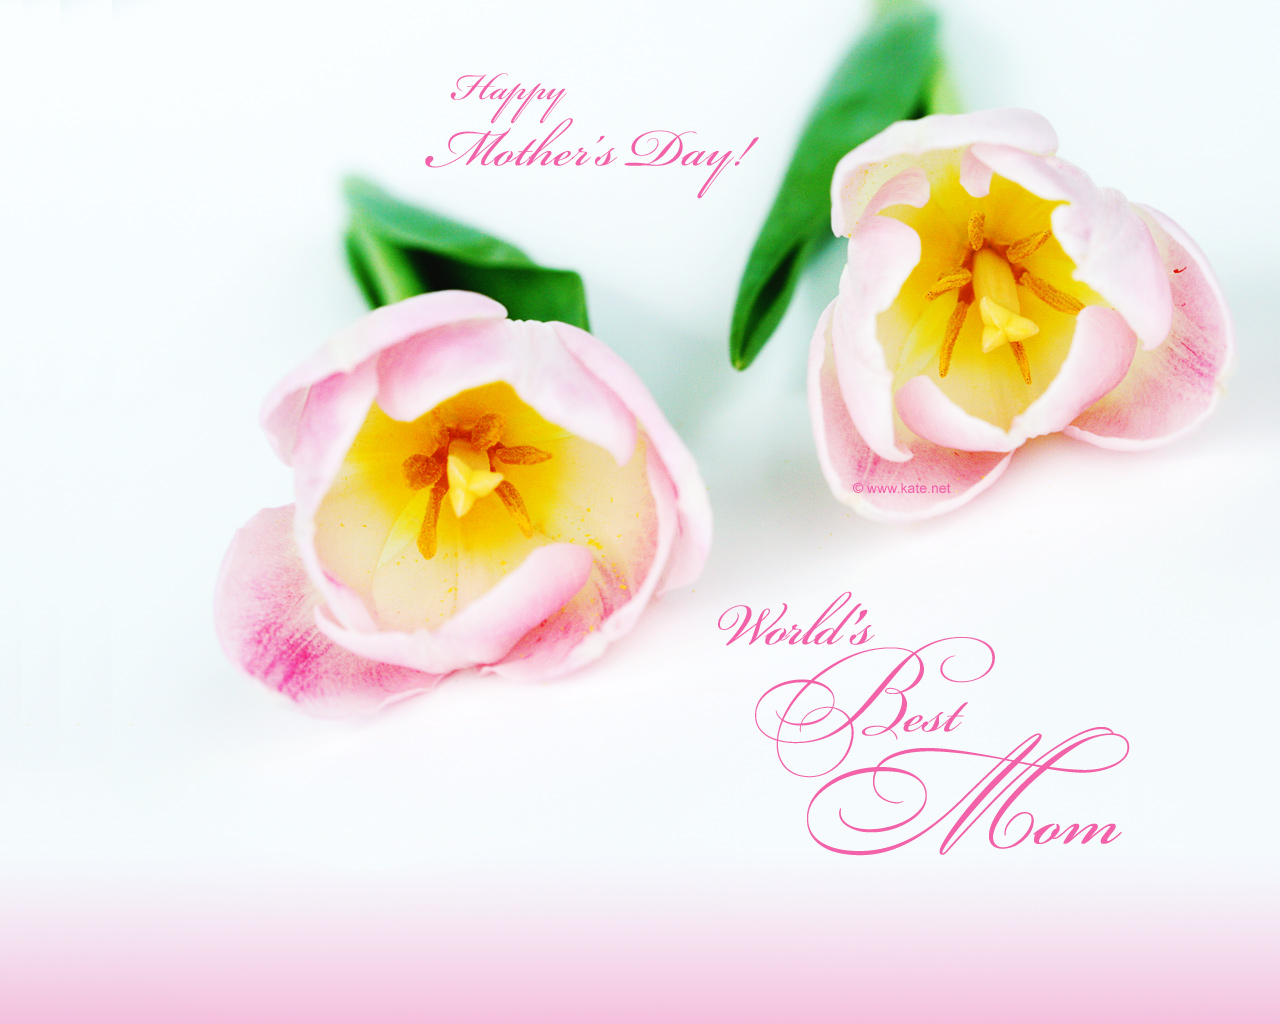 Happy Mothers Day Cool Wallpapers Cool Christian Wallpapers 1280x1024